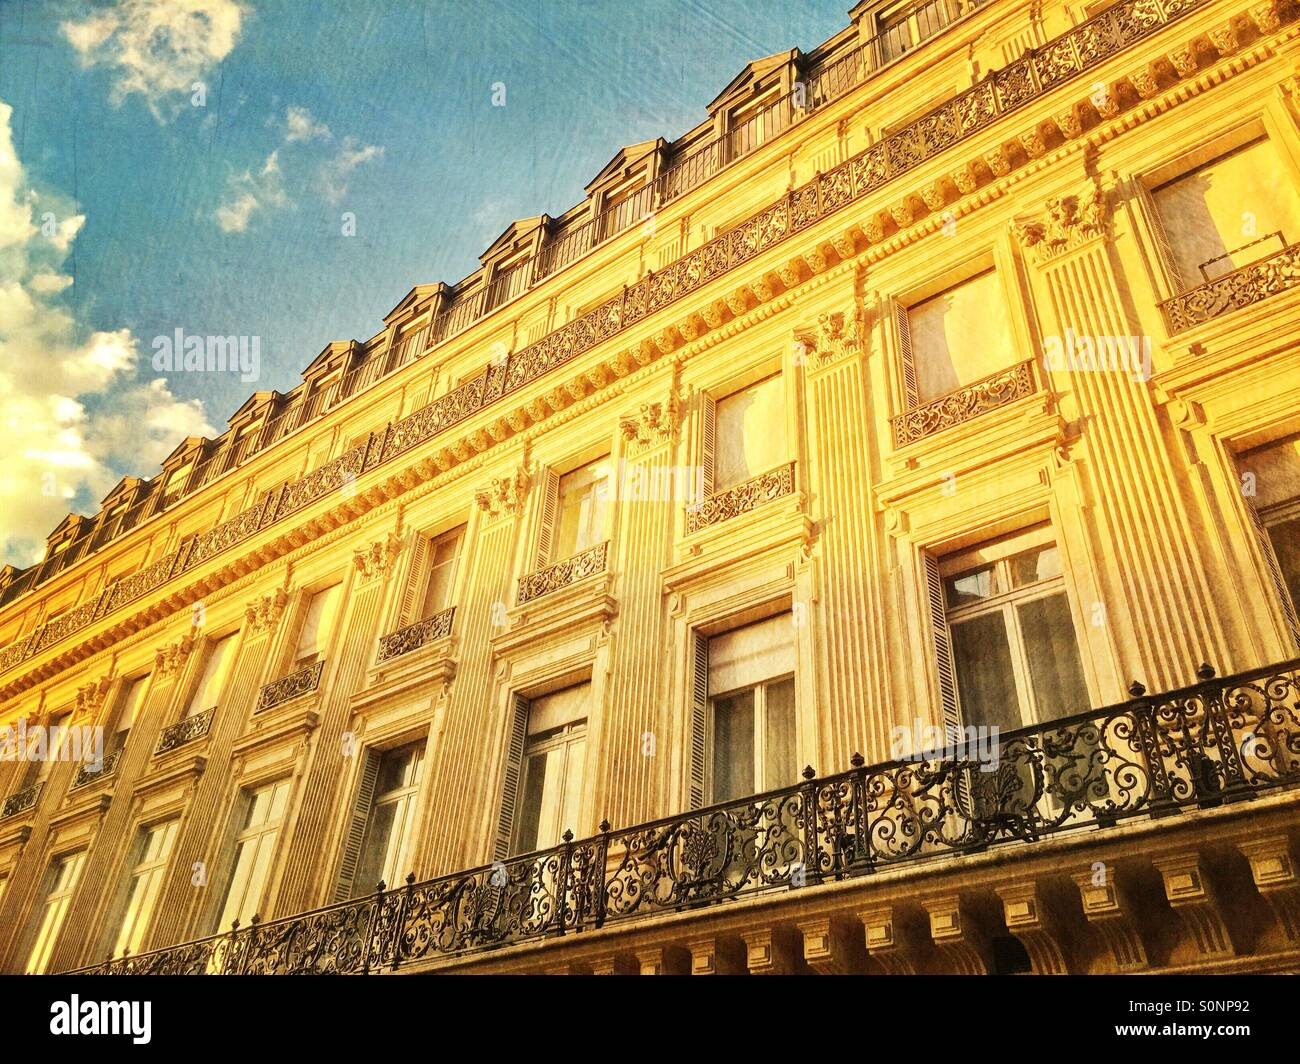 Beautiful old apartment building with classical architecture along Les Grands Boulevards in Paris, France. VintageStock Photo